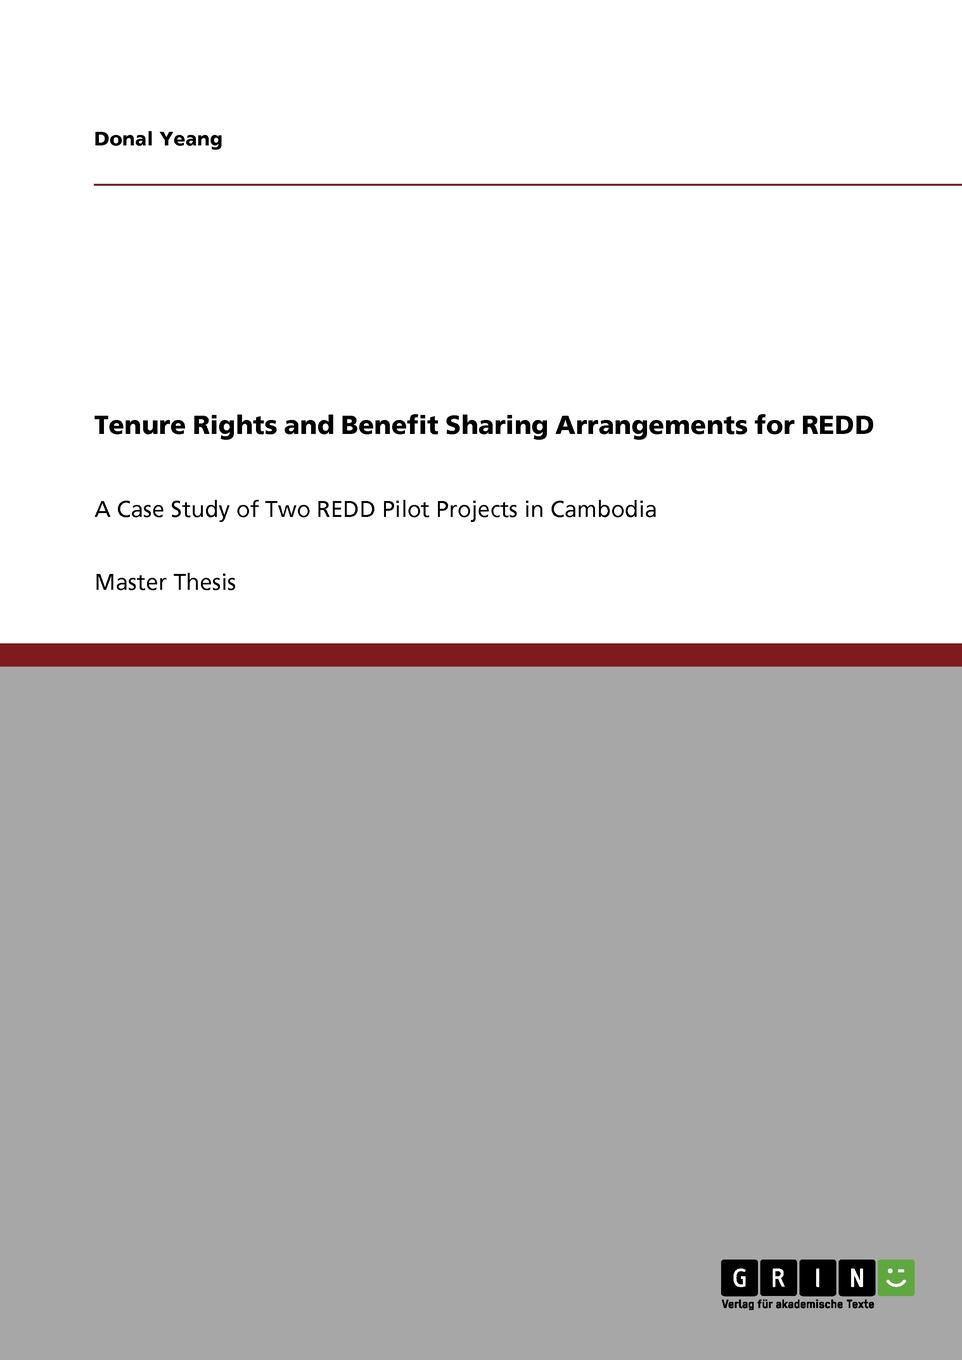 Donal Yeang Tenure Rights and Benefit Sharing Arrangements for REDD study of knowledge transfer in cambodia